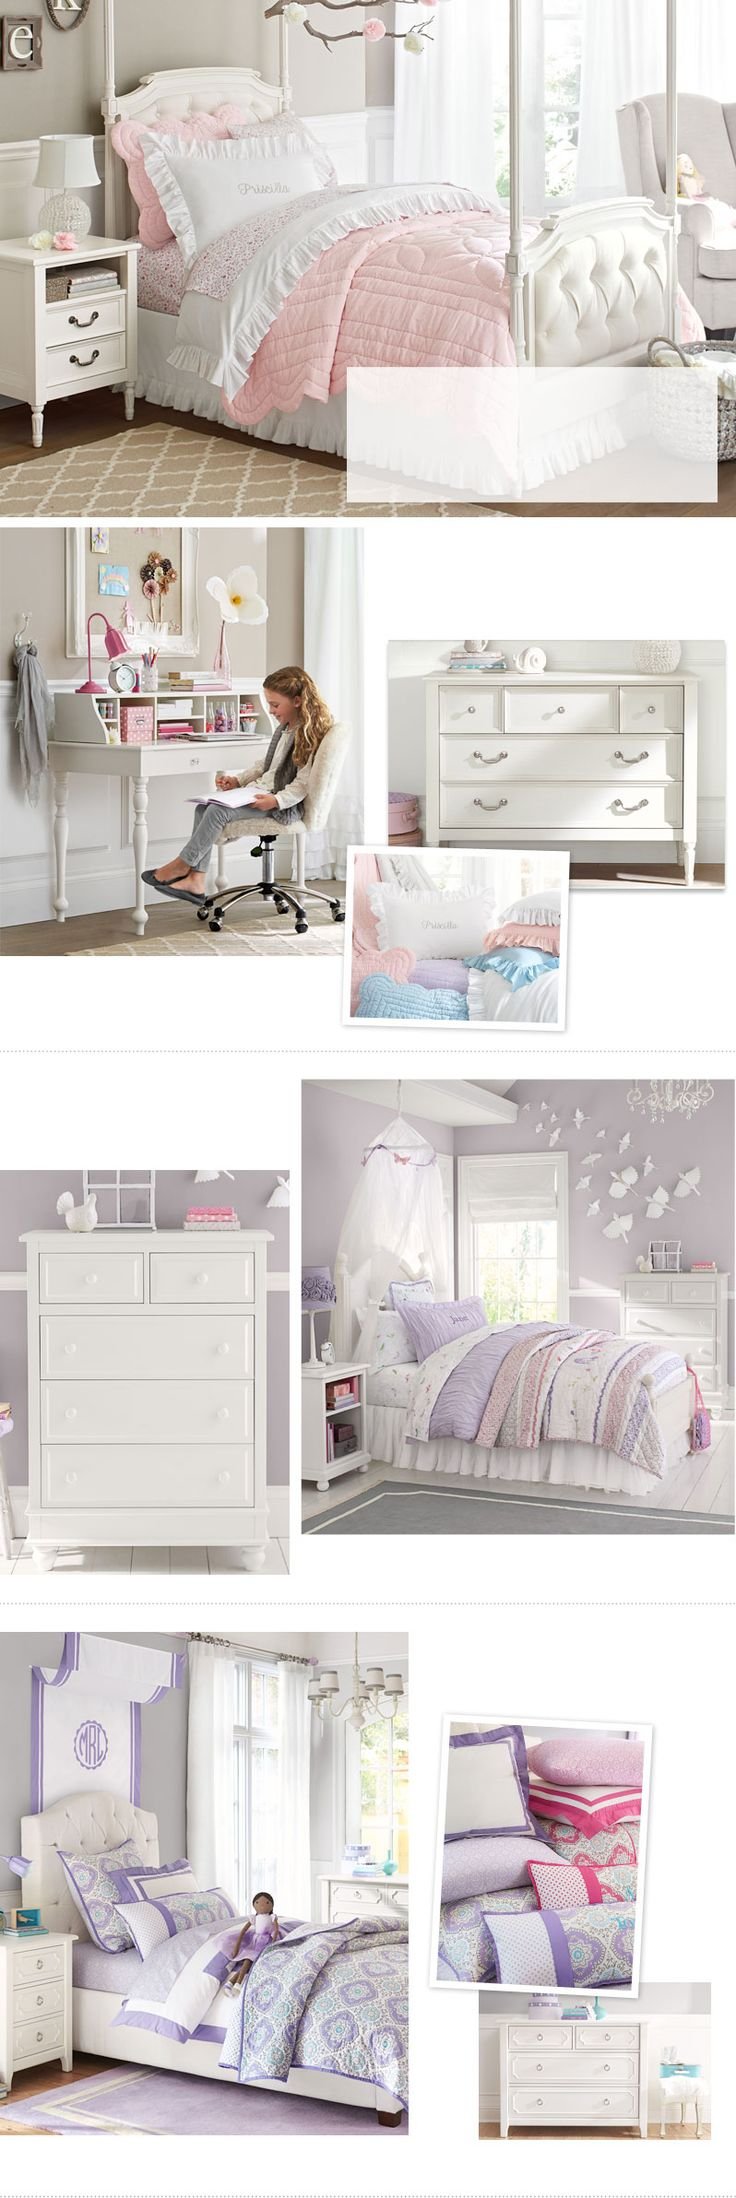 Girls Bedroom Ideas & Girls Room Ideas | Pottery Barn Kids